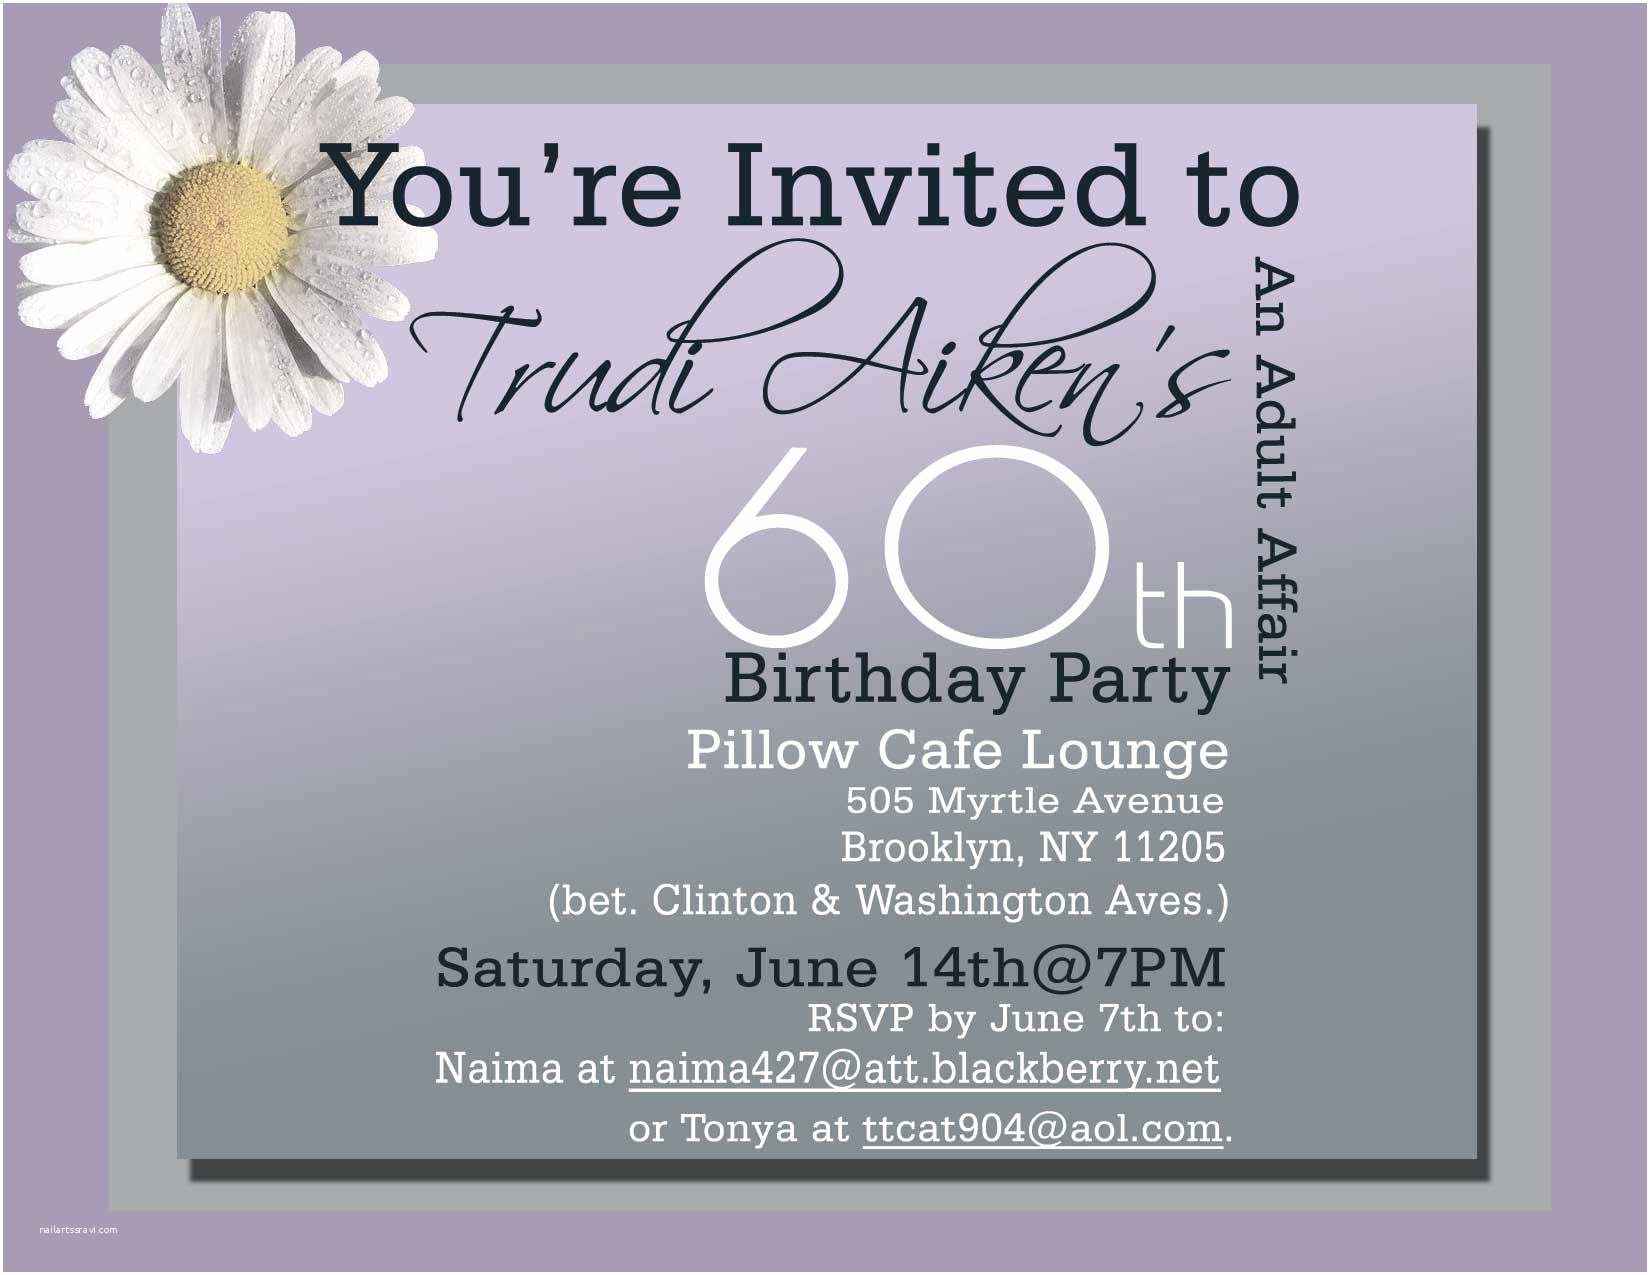 Cool Party Invitations Unique Ideas for 60th Birthday Invitations Free with